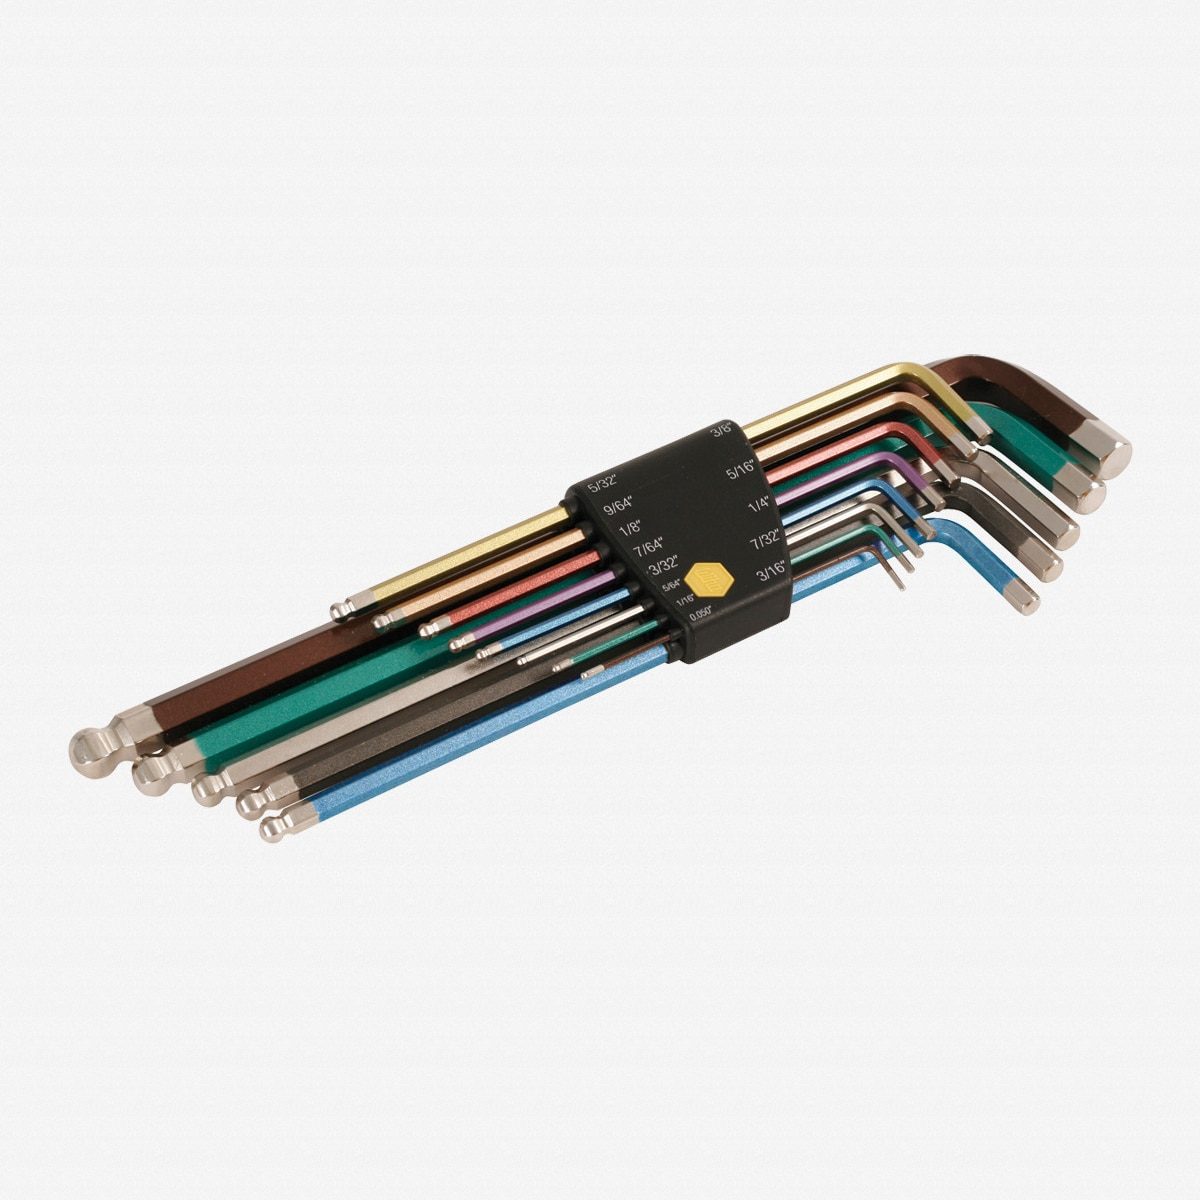 Wiha 36986 Color Coded 13 Piece Ball End Hex L-Key SAE Set